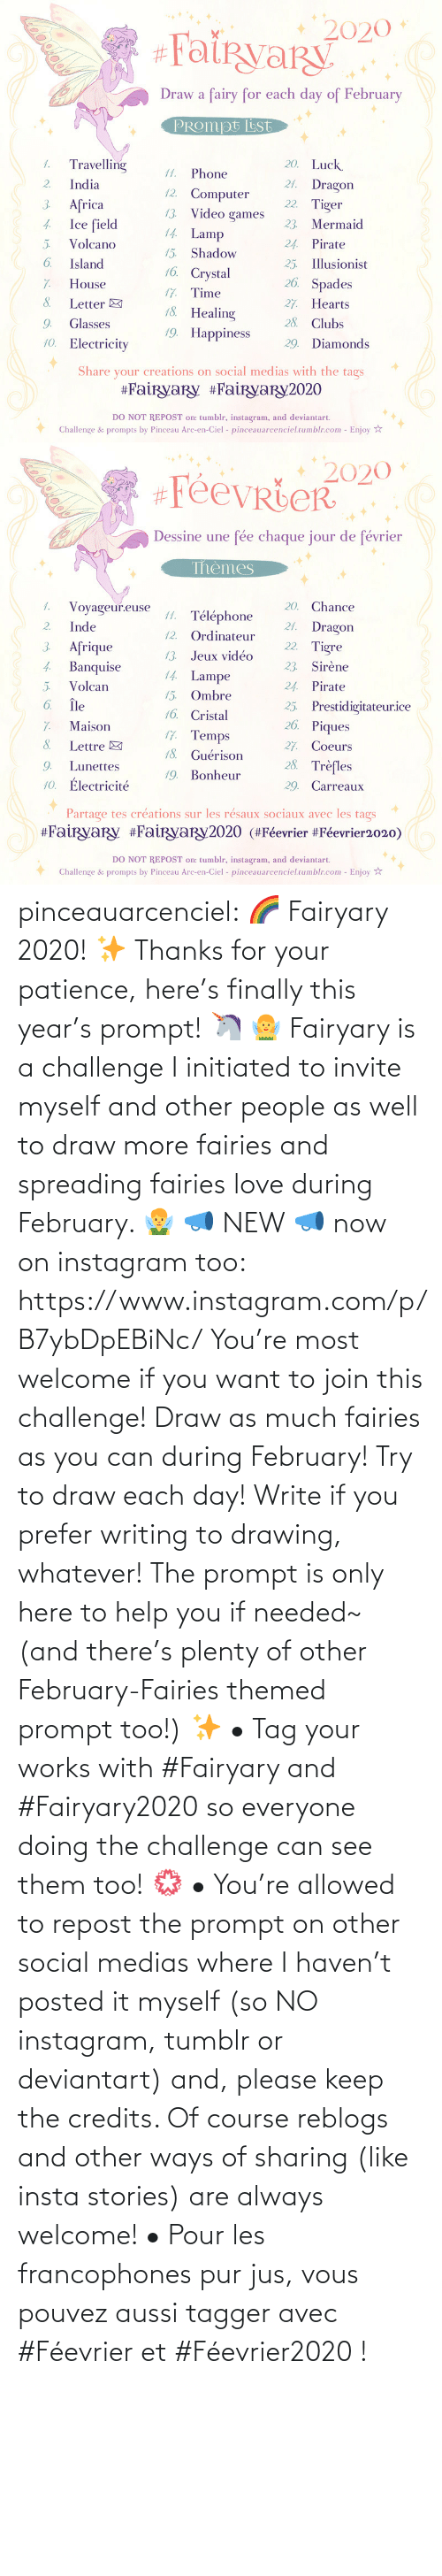 if you want to: pinceauarcenciel: 🌈 Fairyary 2020! ✨ Thanks for your patience, here's finally this year's prompt! 🦄 🧚‍♀️ Fairyary is a challenge I initiated to invite myself and other people as well to draw more fairies and spreading fairies love during February. 🧚‍♂️ 📣 NEW 📣 now on instagram too: https://www.instagram.com/p/B7ybDpEBiNc/ You're most welcome if you want to join this challenge! Draw as much fairies as you can during February! Try to draw each day! Write if you prefer writing to drawing, whatever! The prompt is only here to help you if needed~ (and there's plenty of other February-Fairies themed prompt too!) ✨ • Tag your works with #Fairyary and #Fairyary2020 so everyone doing the challenge can see them too! 💮 • You're allowed to repost the prompt on other social medias where I haven't posted it myself (so NO instagram, tumblr or deviantart) and, please keep the credits. Of course reblogs and other ways of sharing (like insta stories) are always welcome!